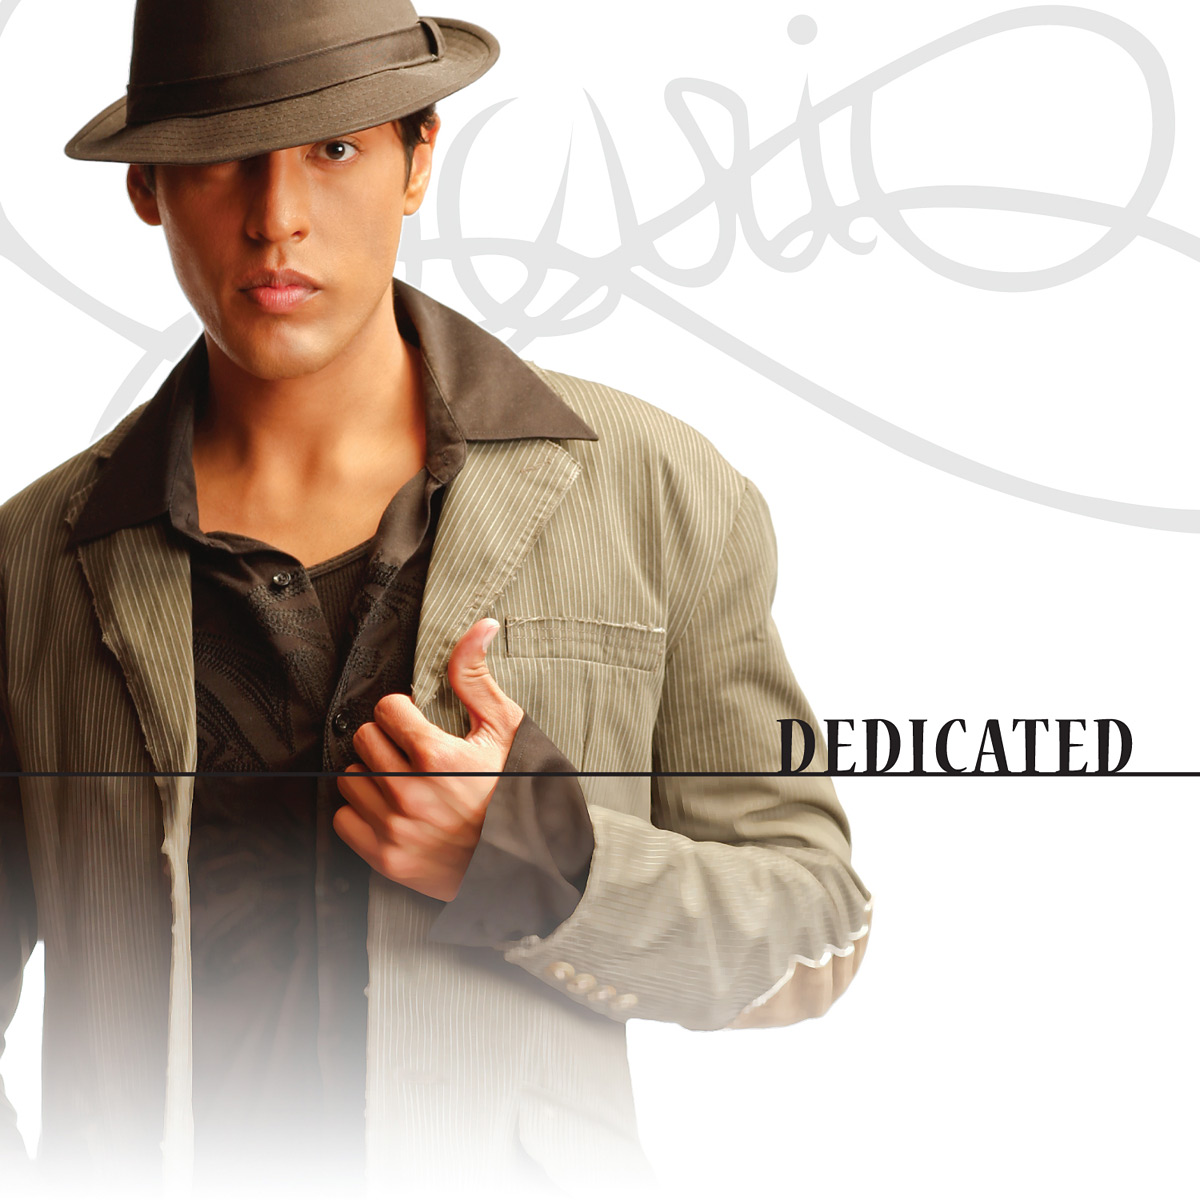 Get Dario's album: Dedicated